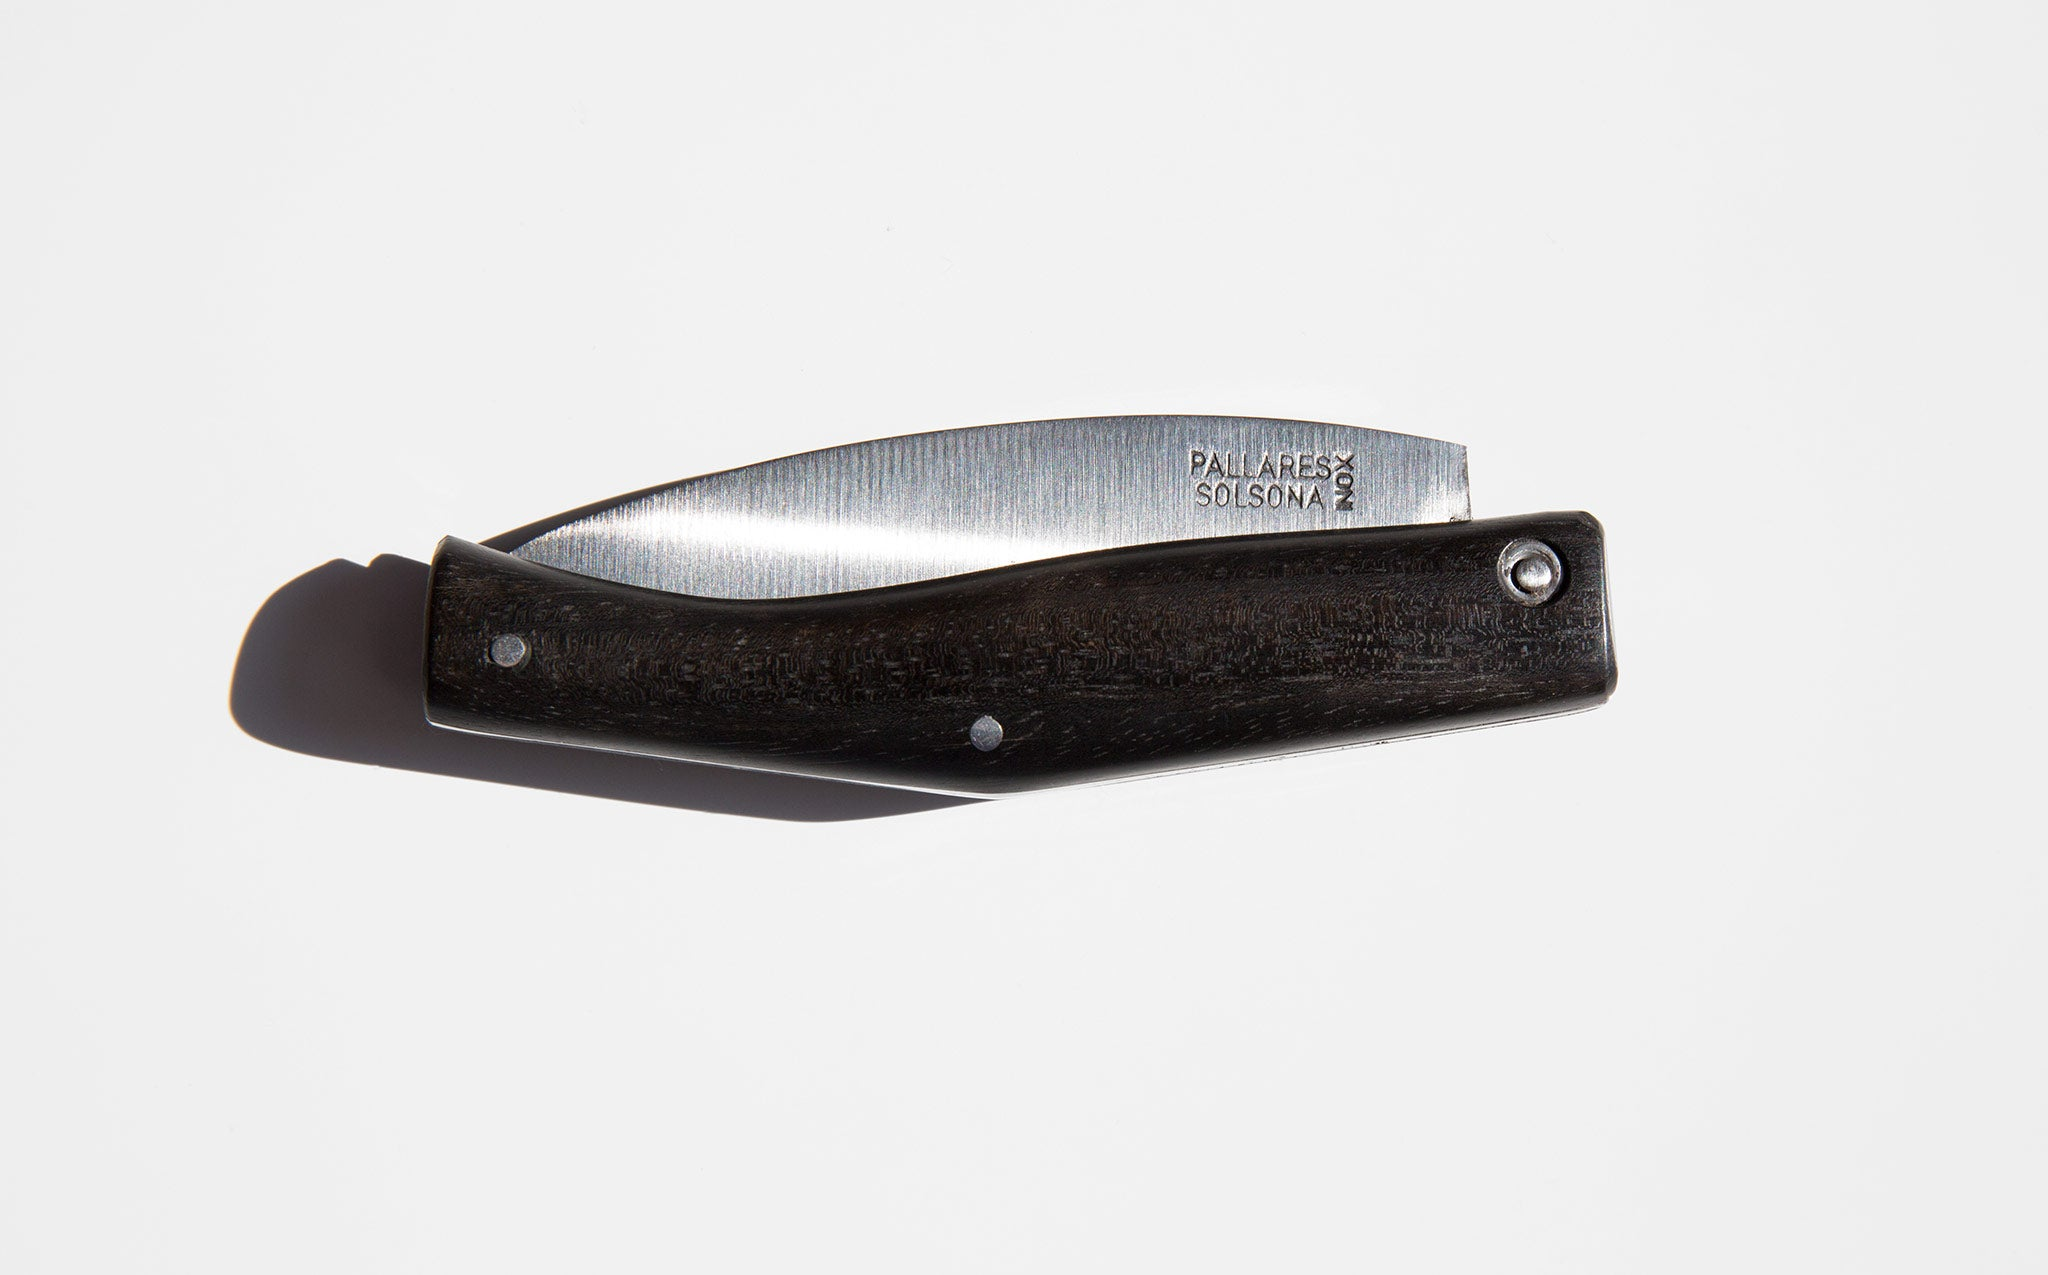 Pallarés Solsona Ebony Wood Pocket Knife